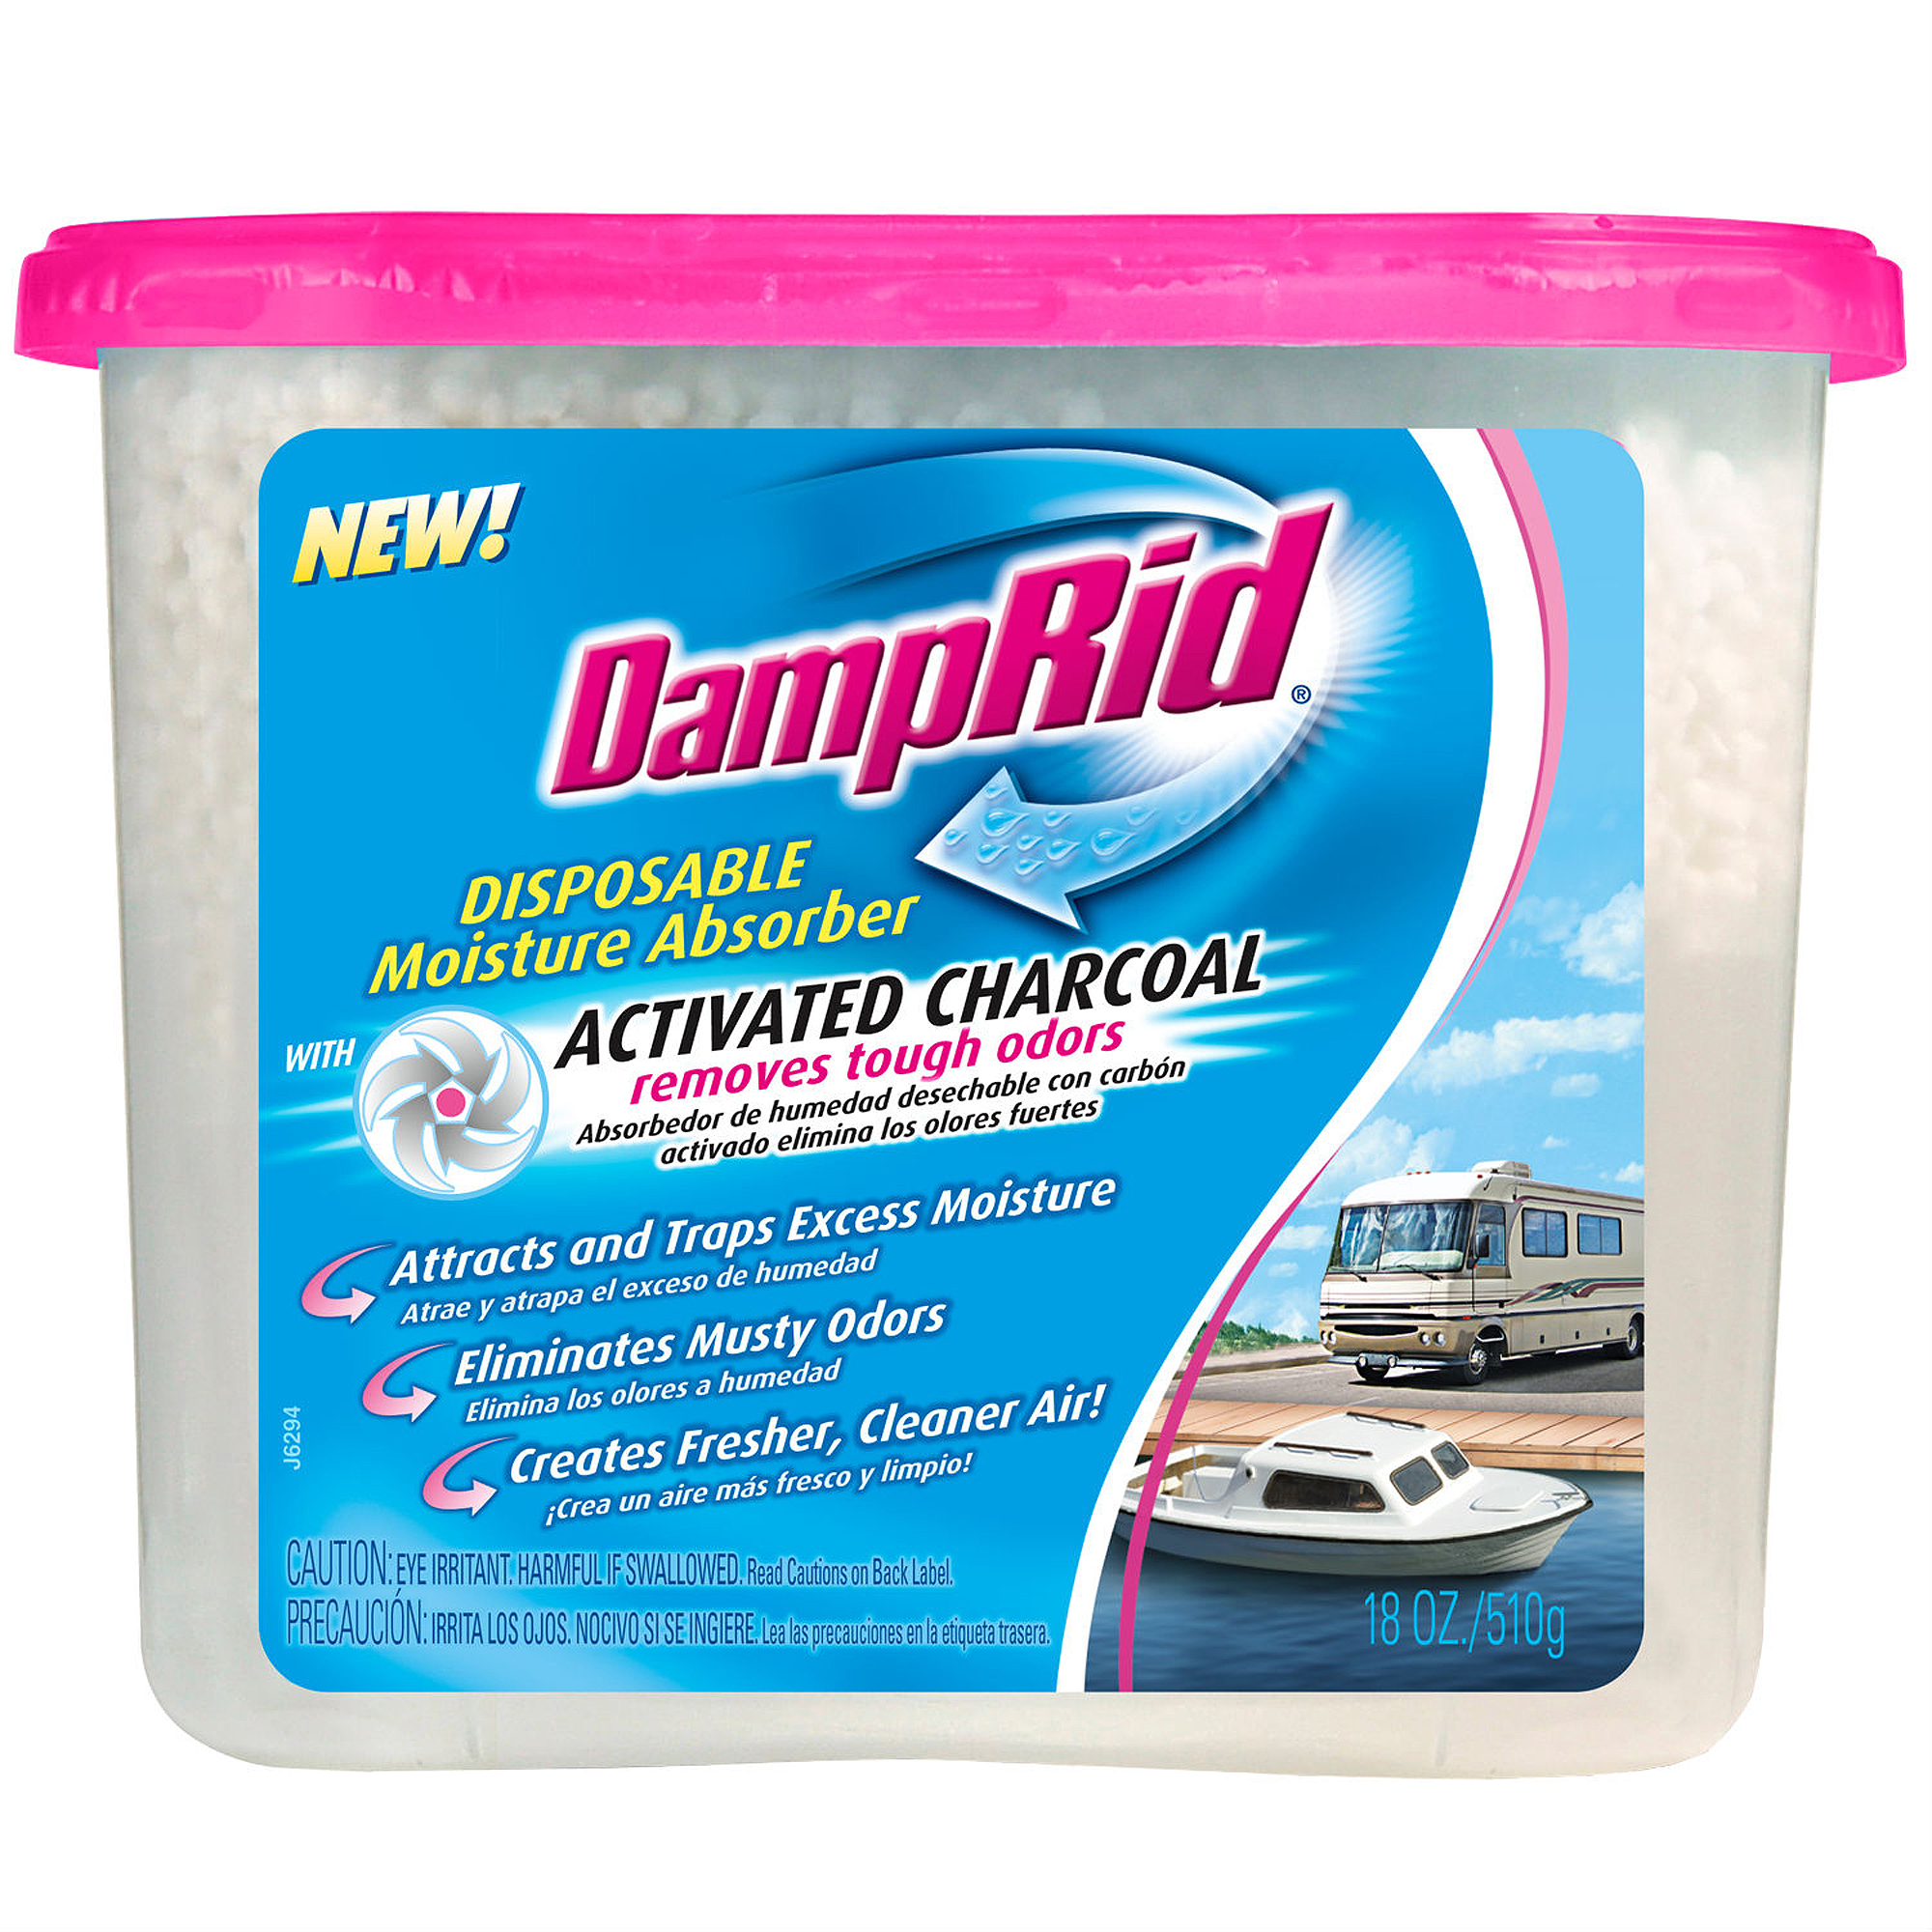 DampRid Moisture Absorber with Activated Charcoal - Walmart.com